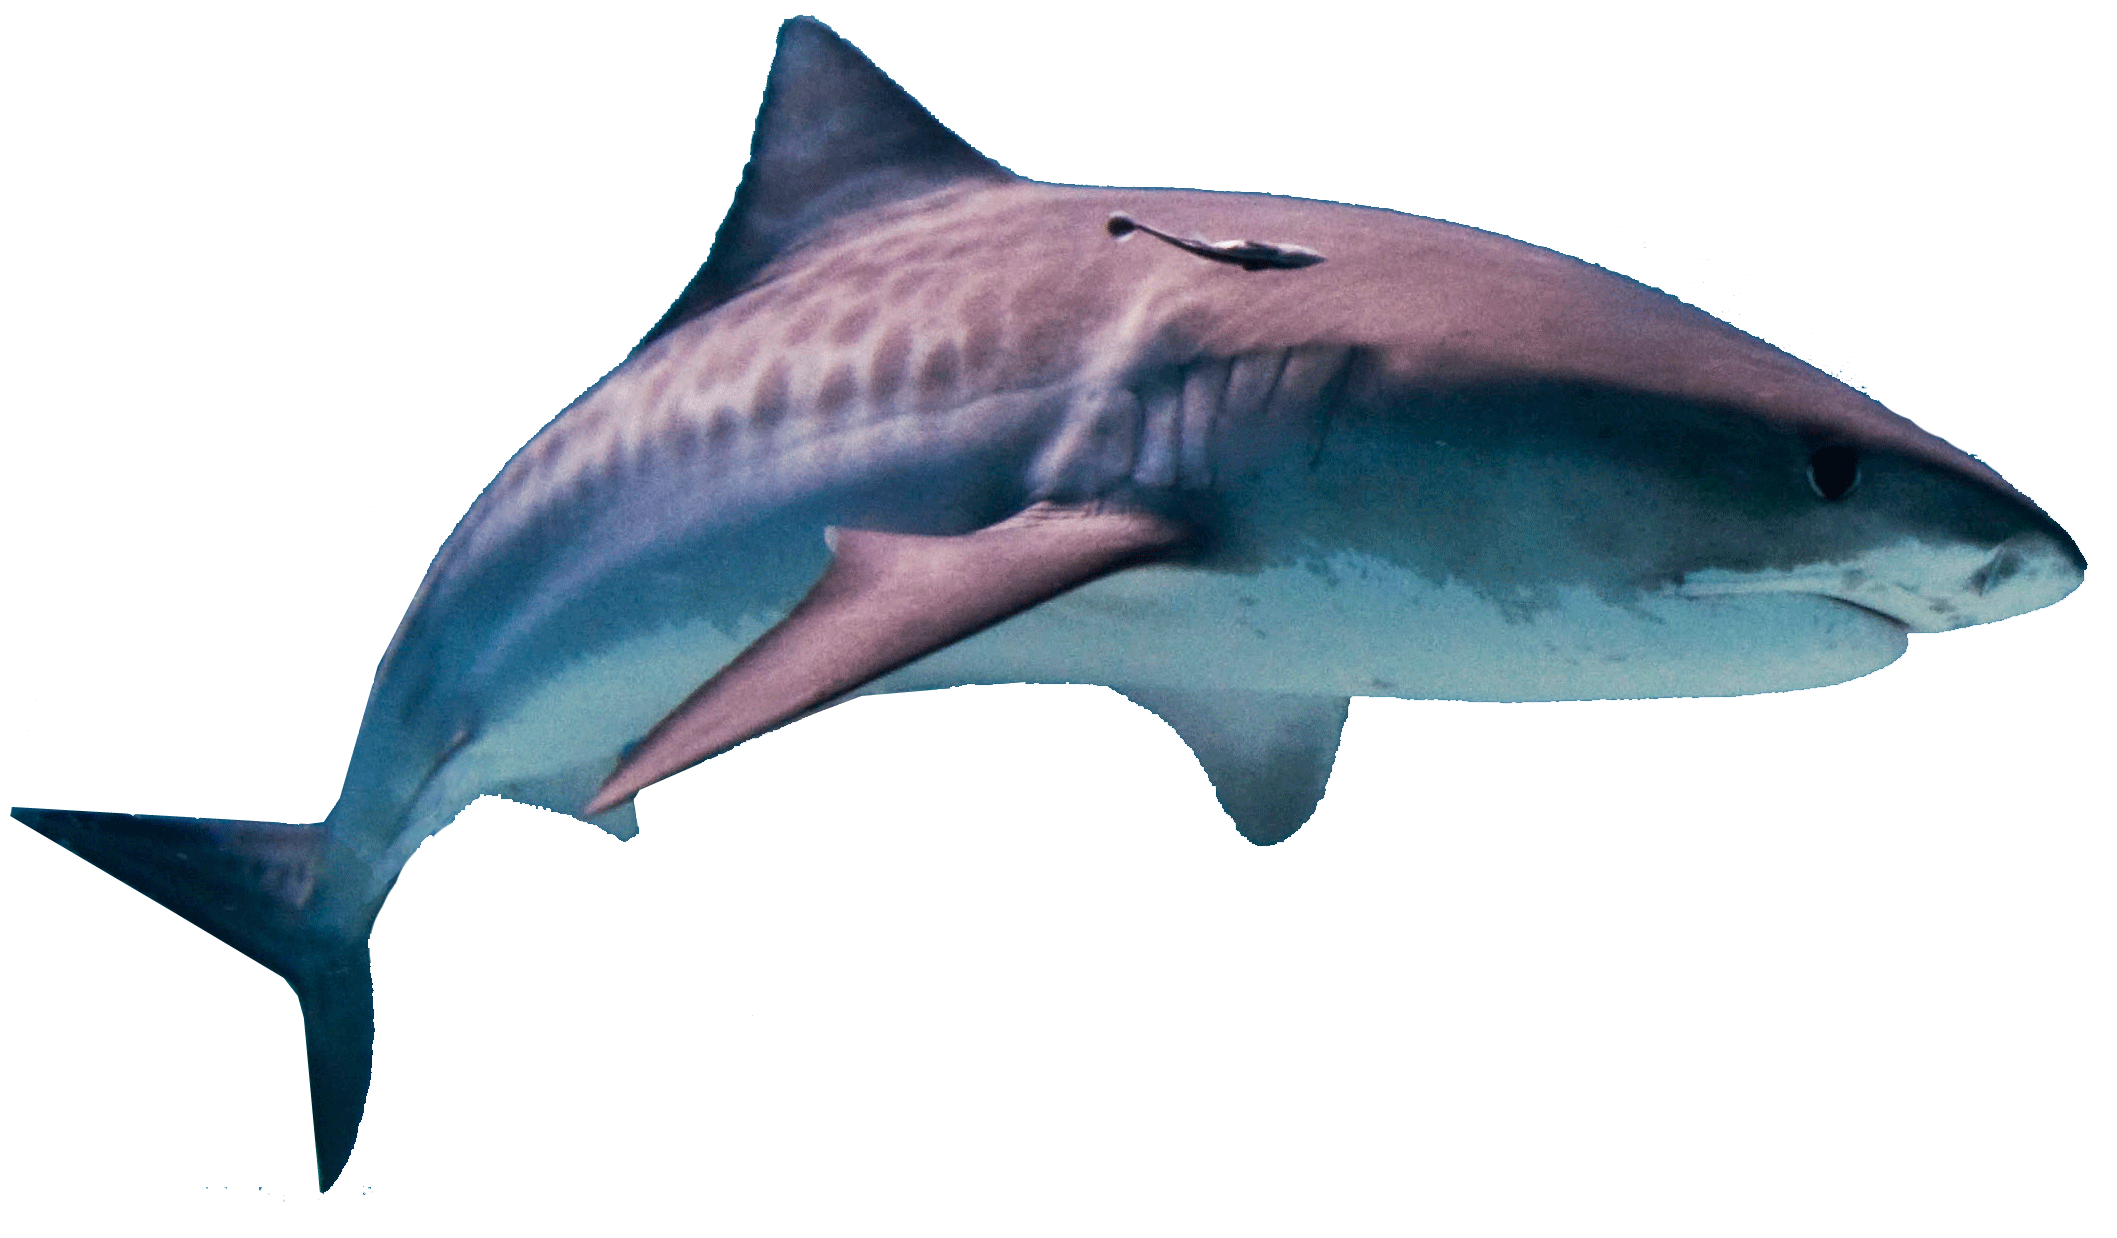 Shark Attack Png Transparent Background Free Download 42728 Freeiconspng Rainbow shark png and rainbow shark transparent clipart free. shark attack png transparent background